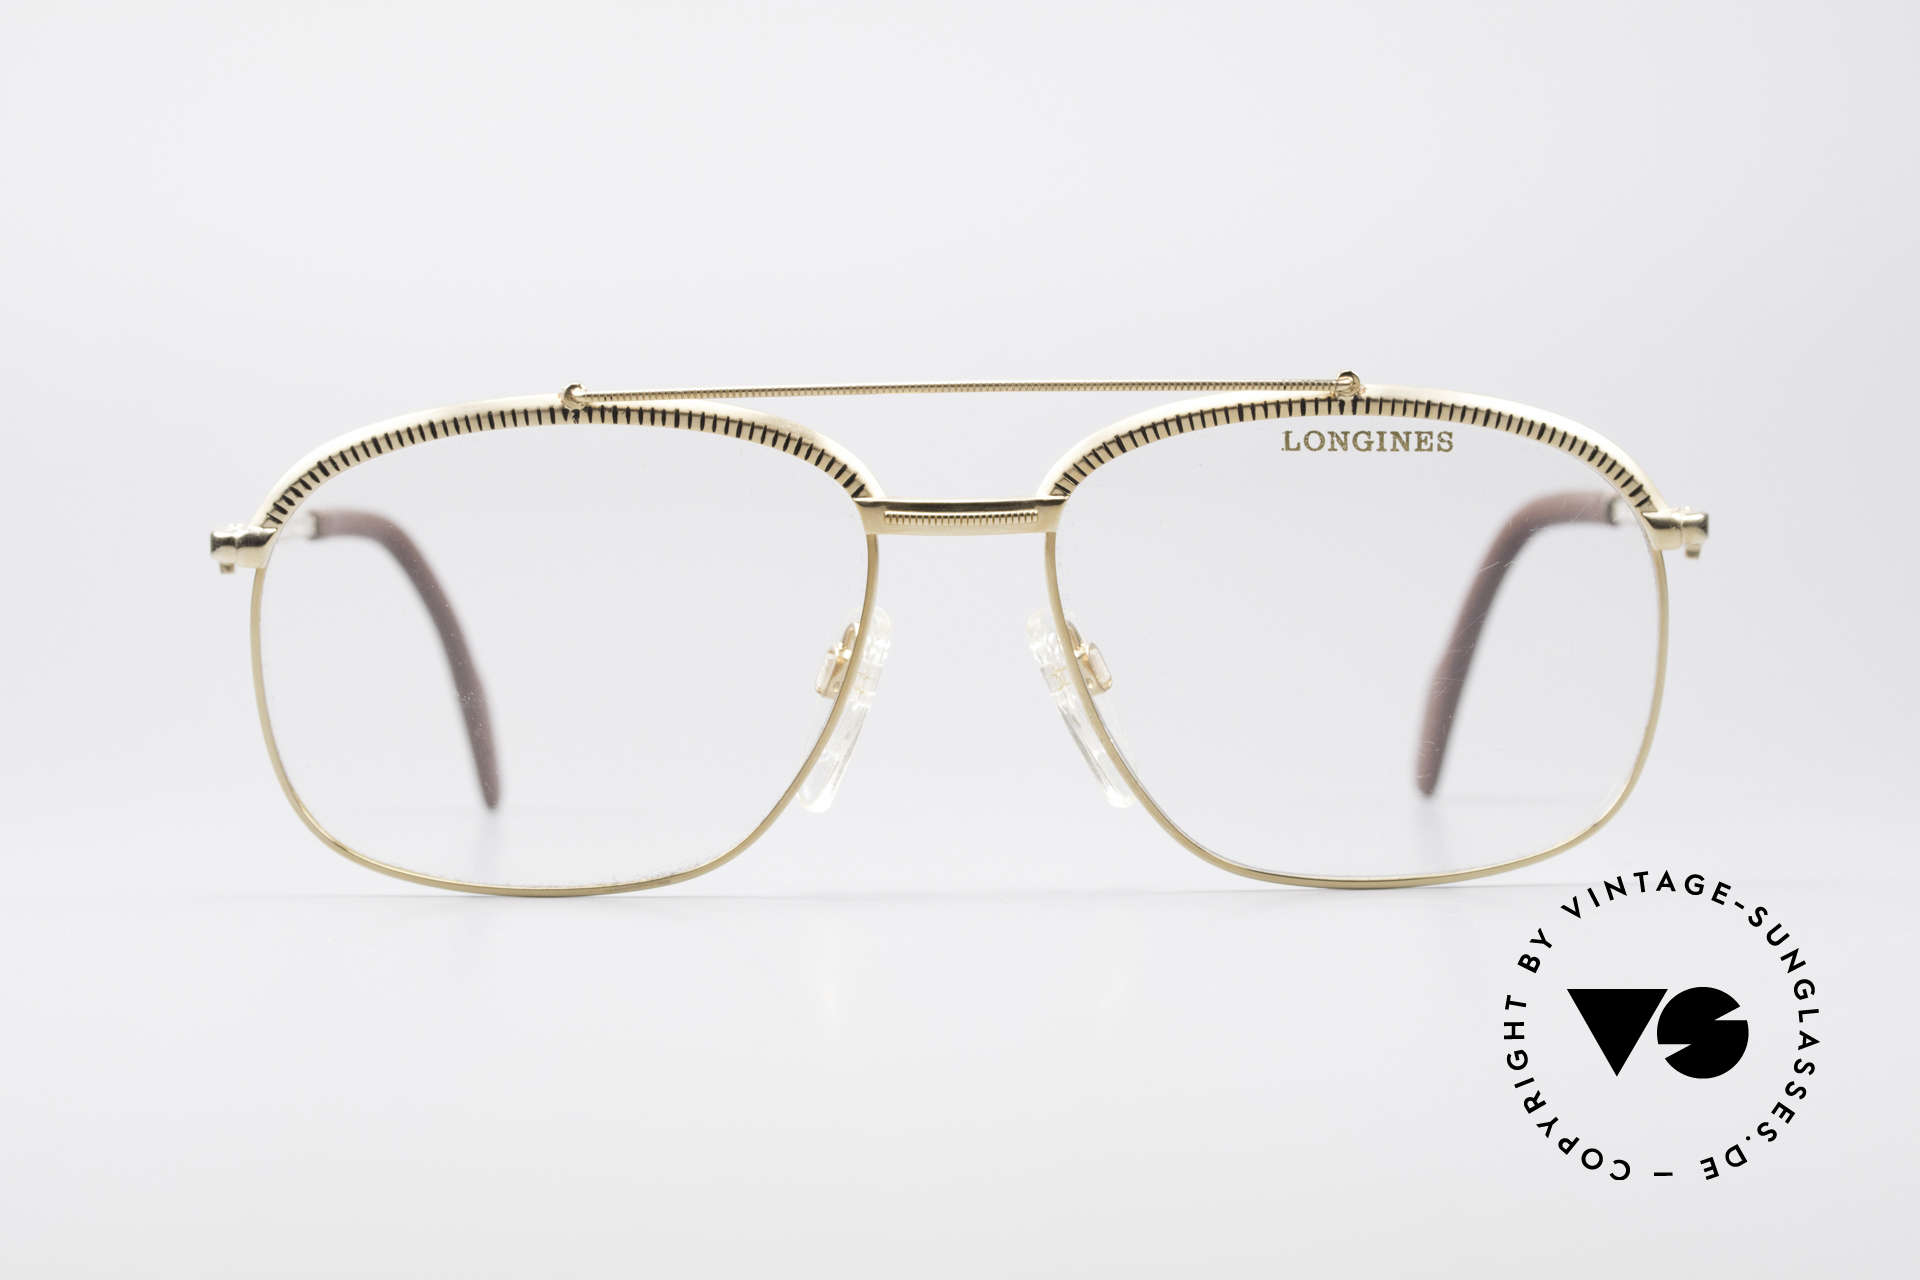 Longines 0172 80's Luxury Eyeglasses, high-end 'made in Germany' quality; gold-plated frame, Made for Men